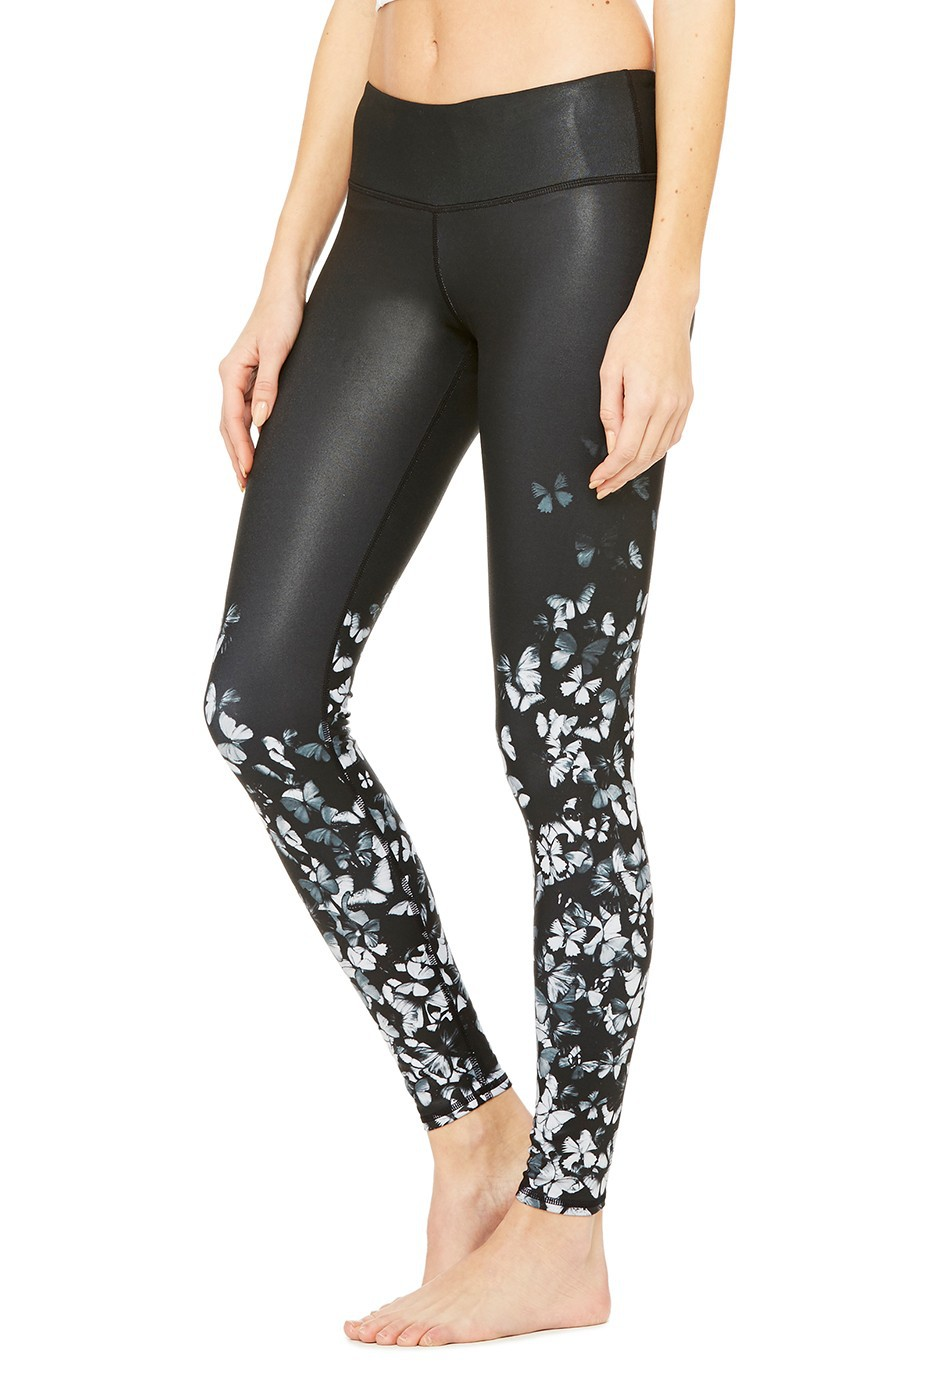 3D Butterfly Print Yoga Pants Running Sport Tights Women Breathable Sport Yoga  Leggings China Shop Onlinein Yoga Pants from Sports  Entertainment on